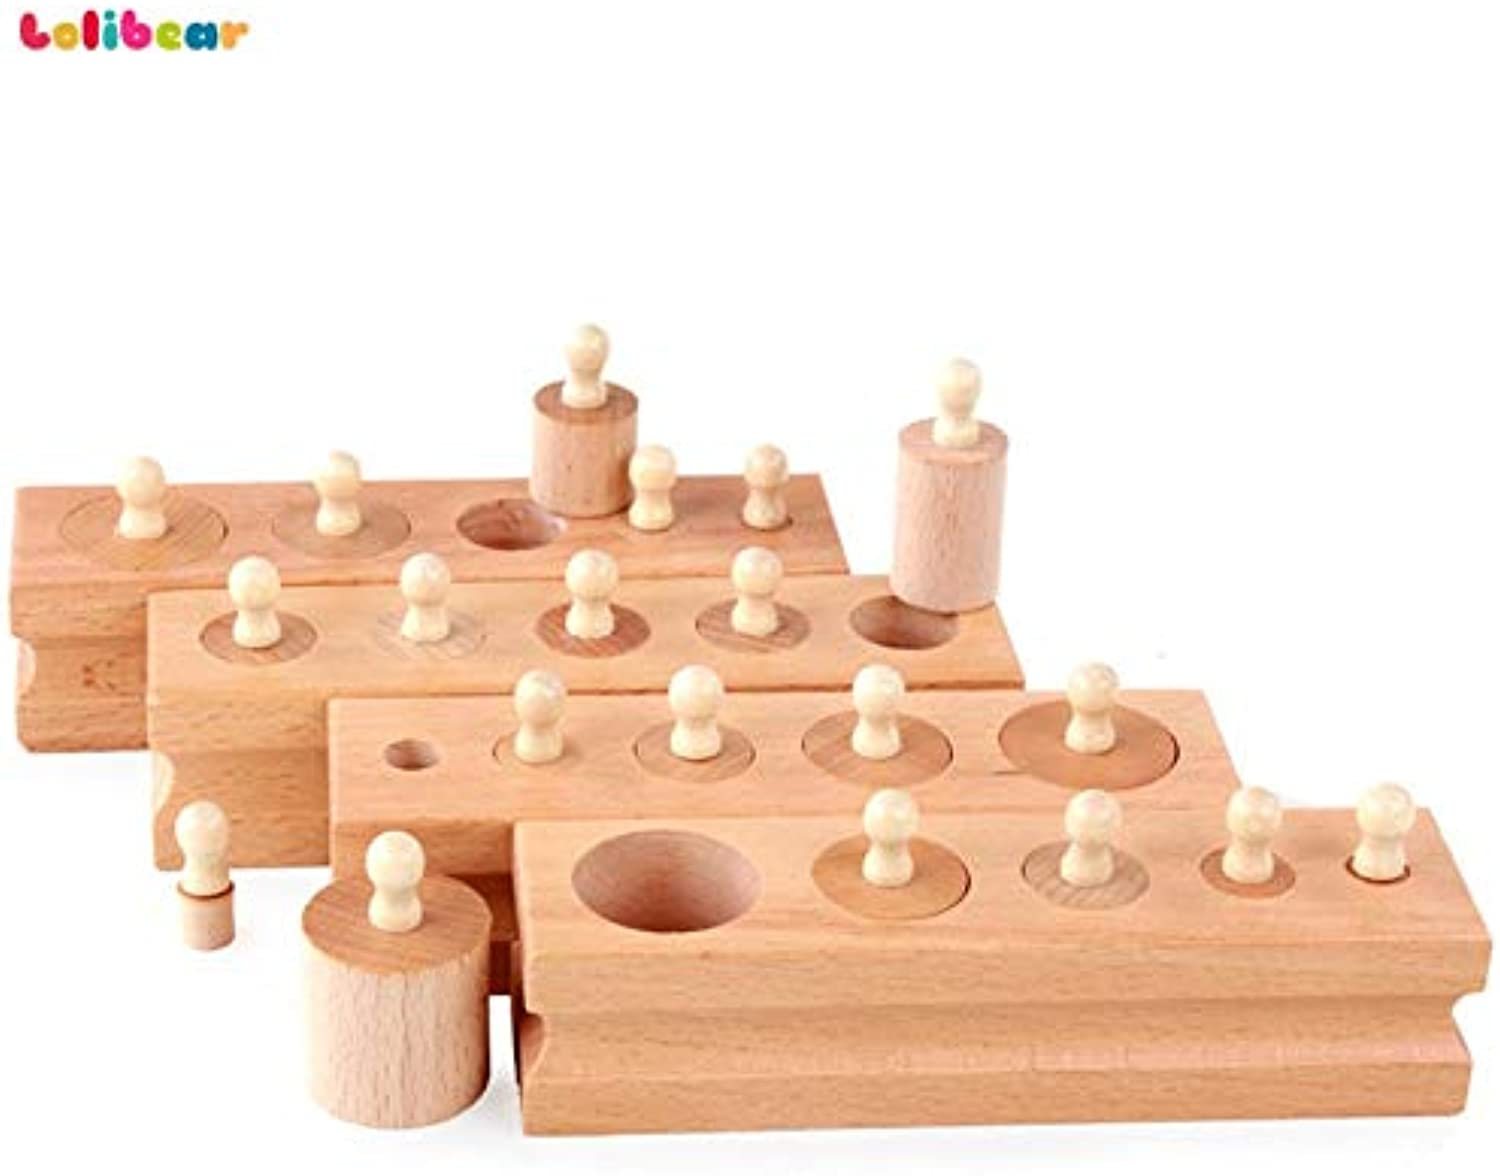 Laliva Montessori Wooden Cylinder Socket Blocks Toy Baby Practice Senses Shape Paired Educational and Development Toys for Early Kids